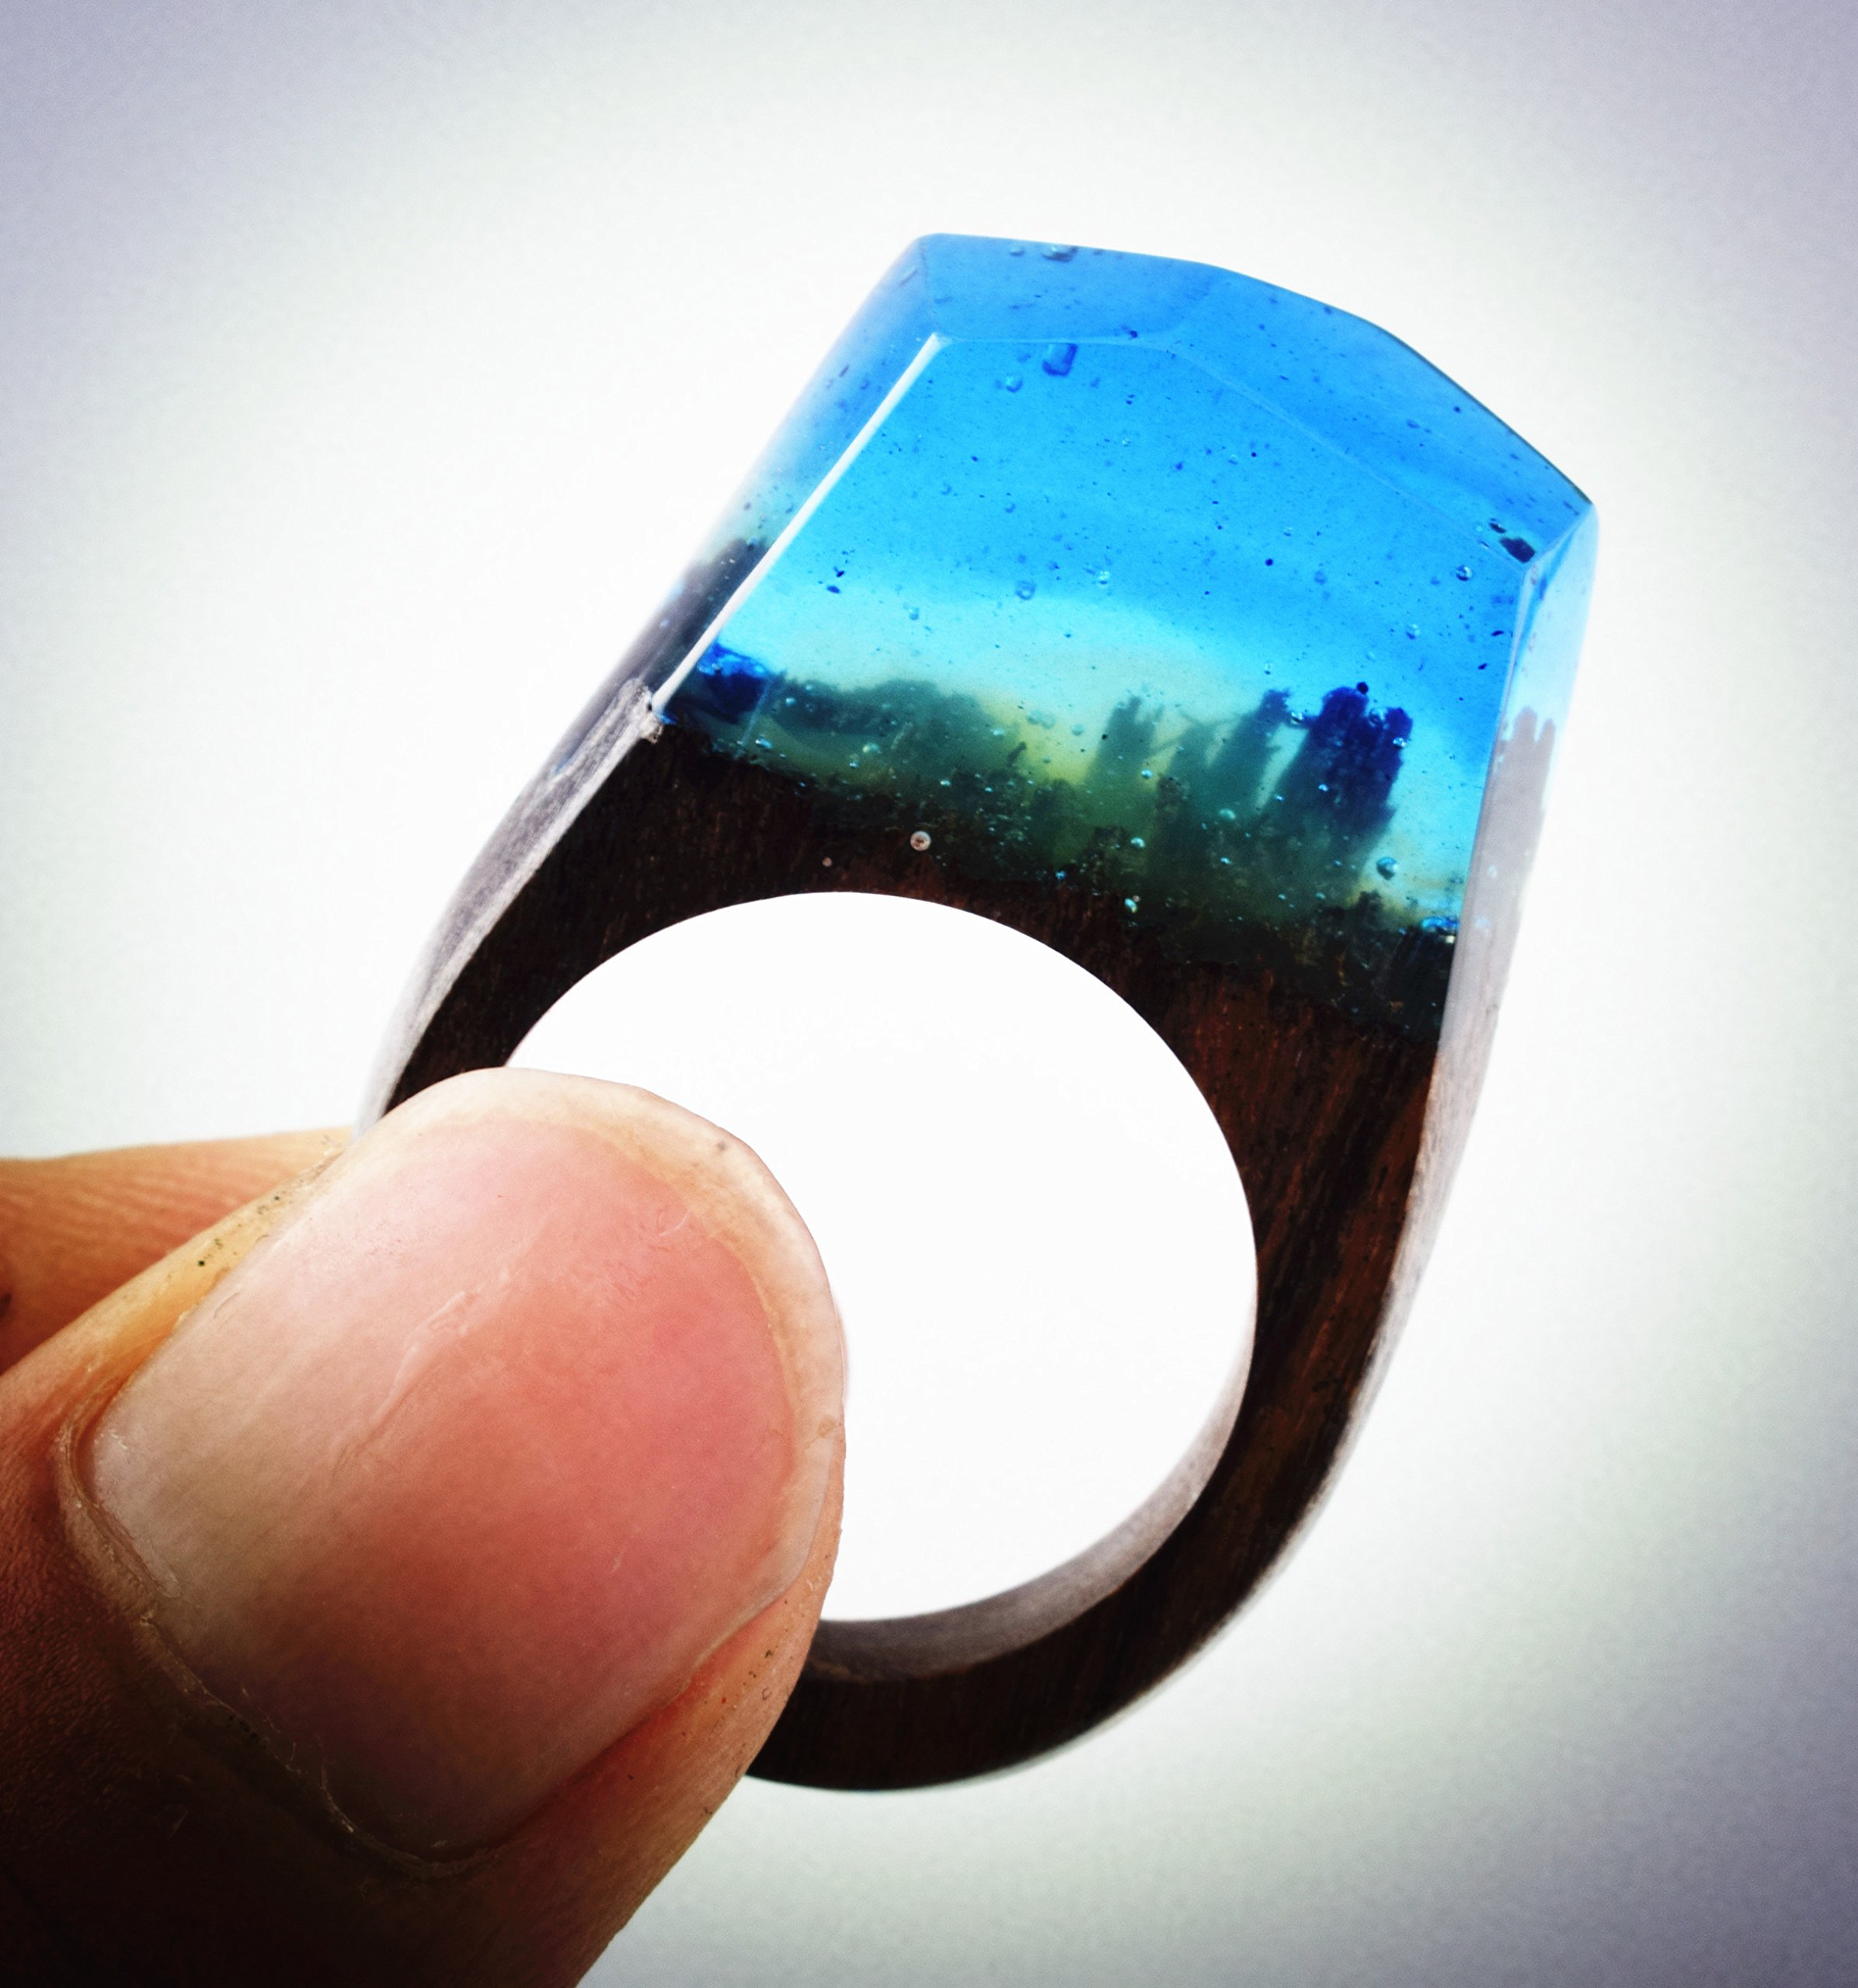 Heyou Love Handmade Wood Resin Ring With Nature Scenery Landscape Inside Jewelry by Heyou Love (Image #4)